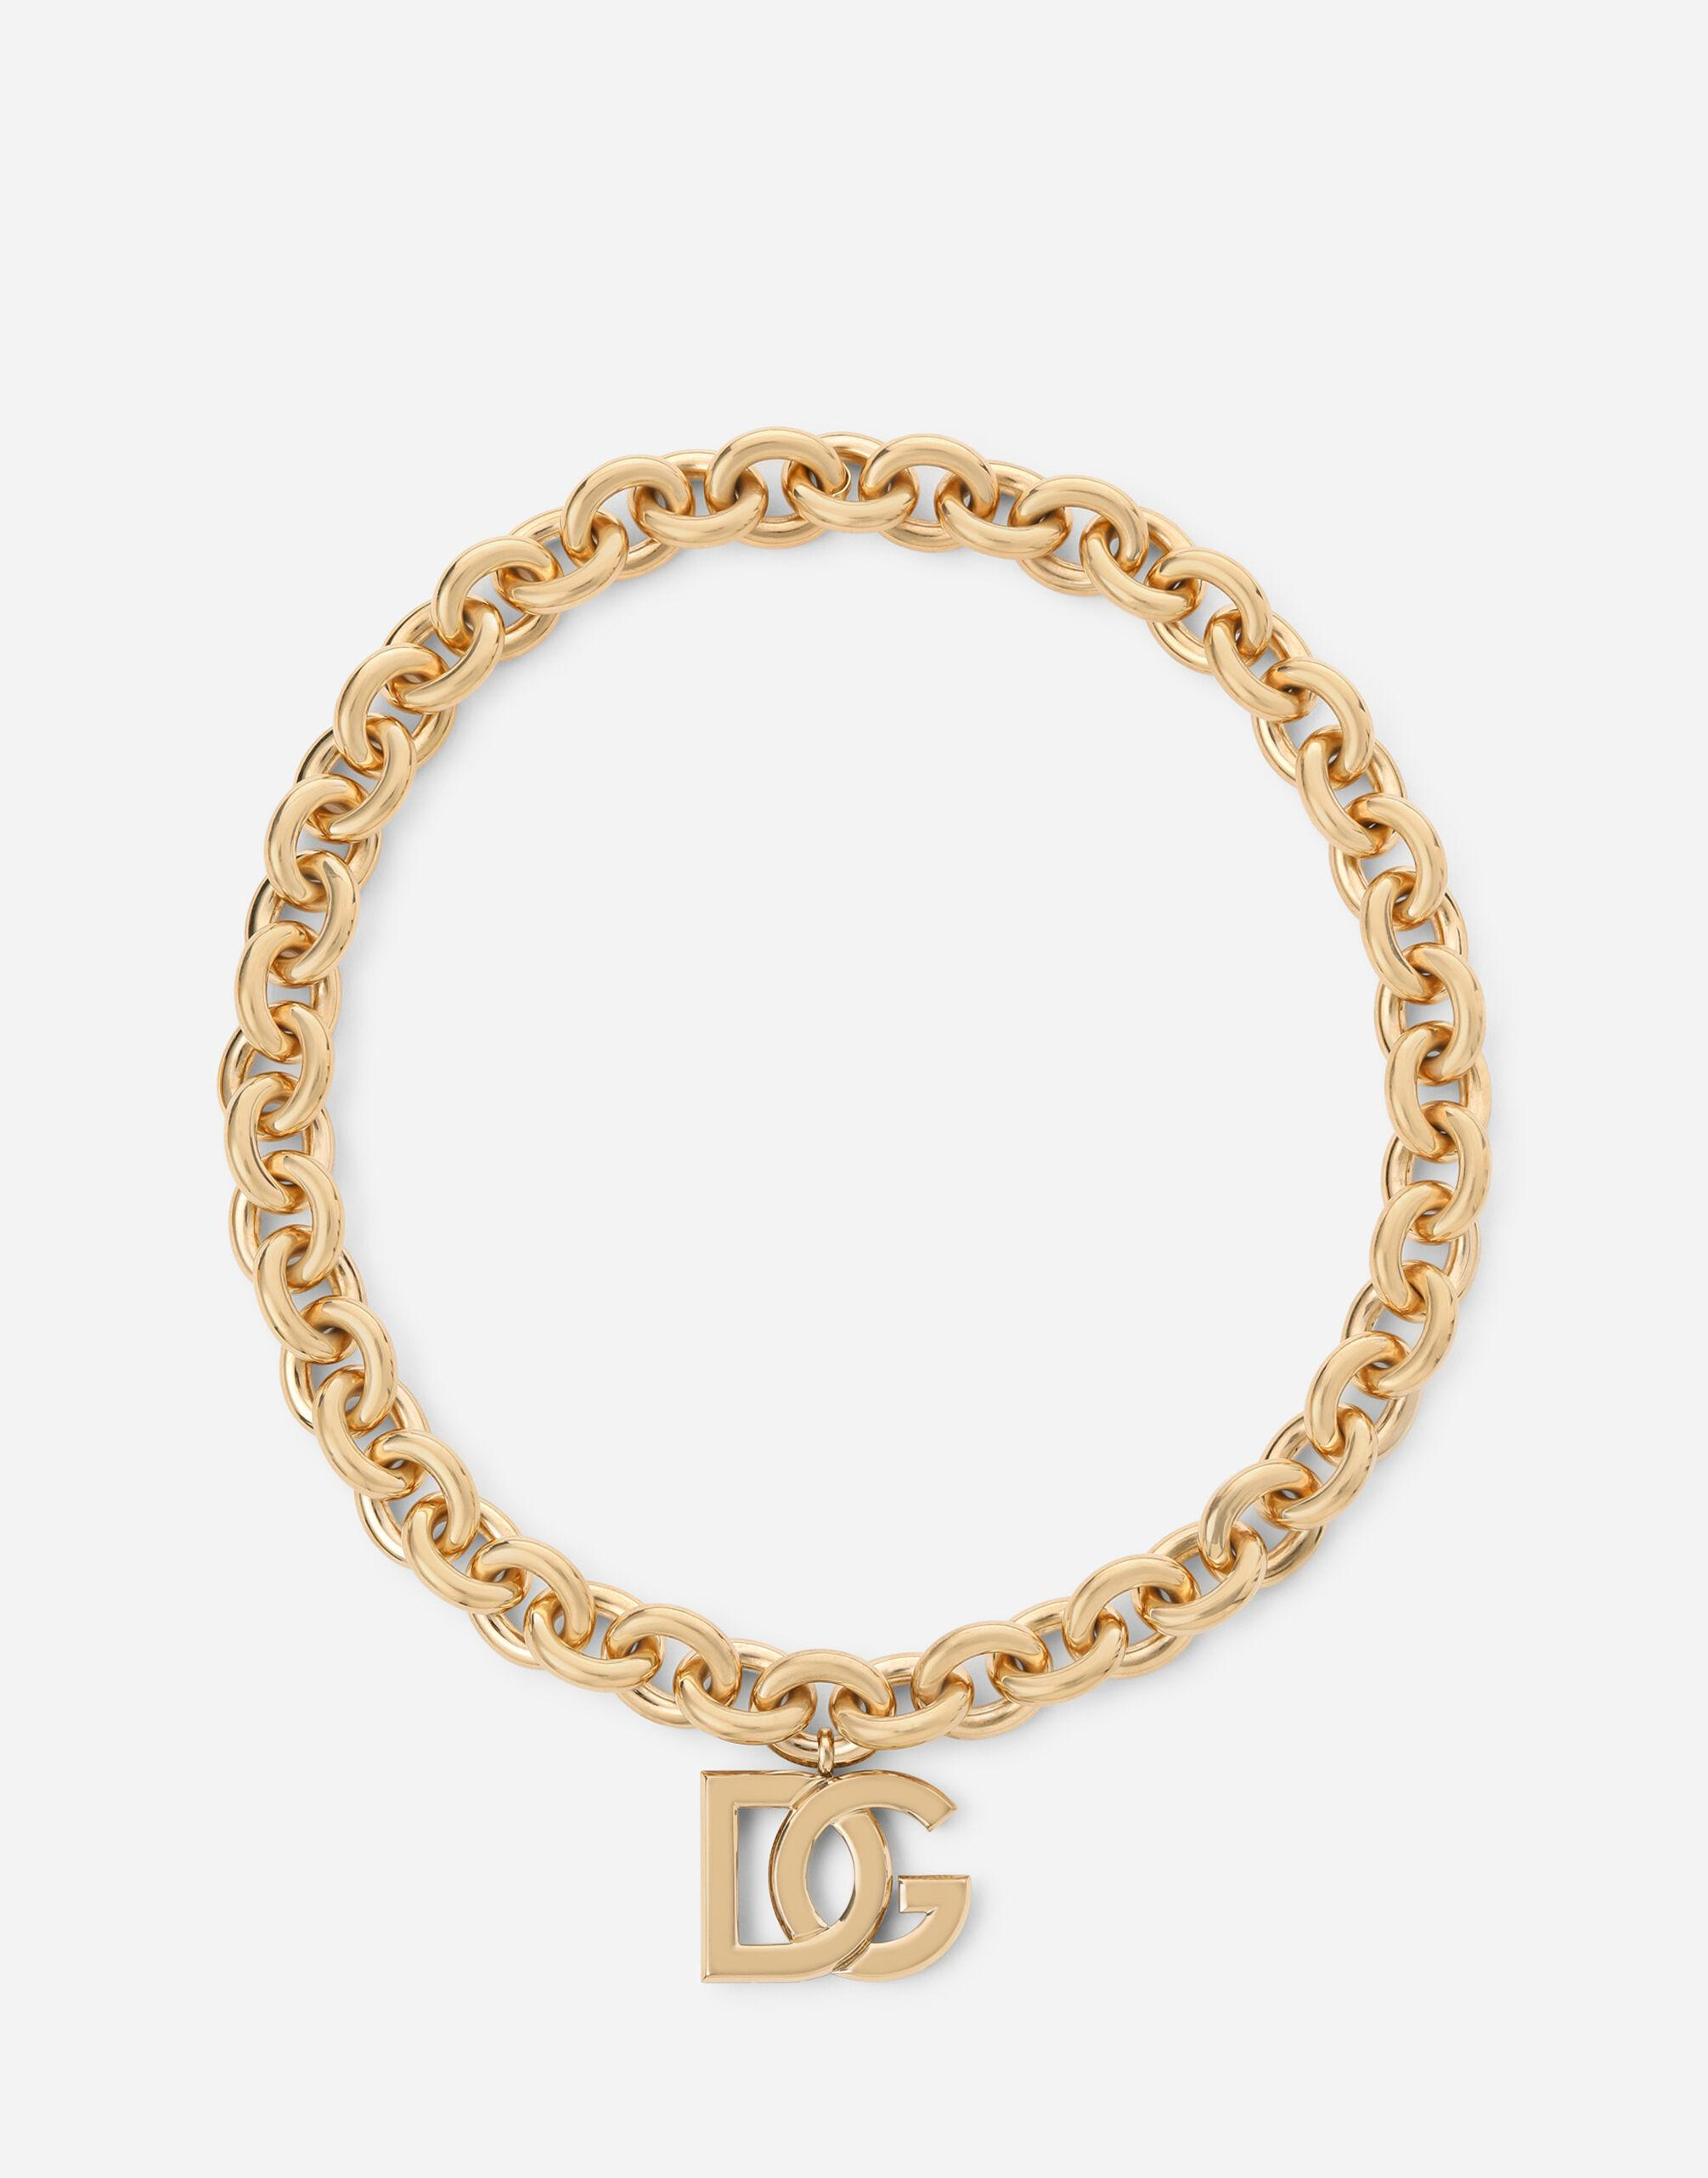 Logo necklace in yellow 18kt gold